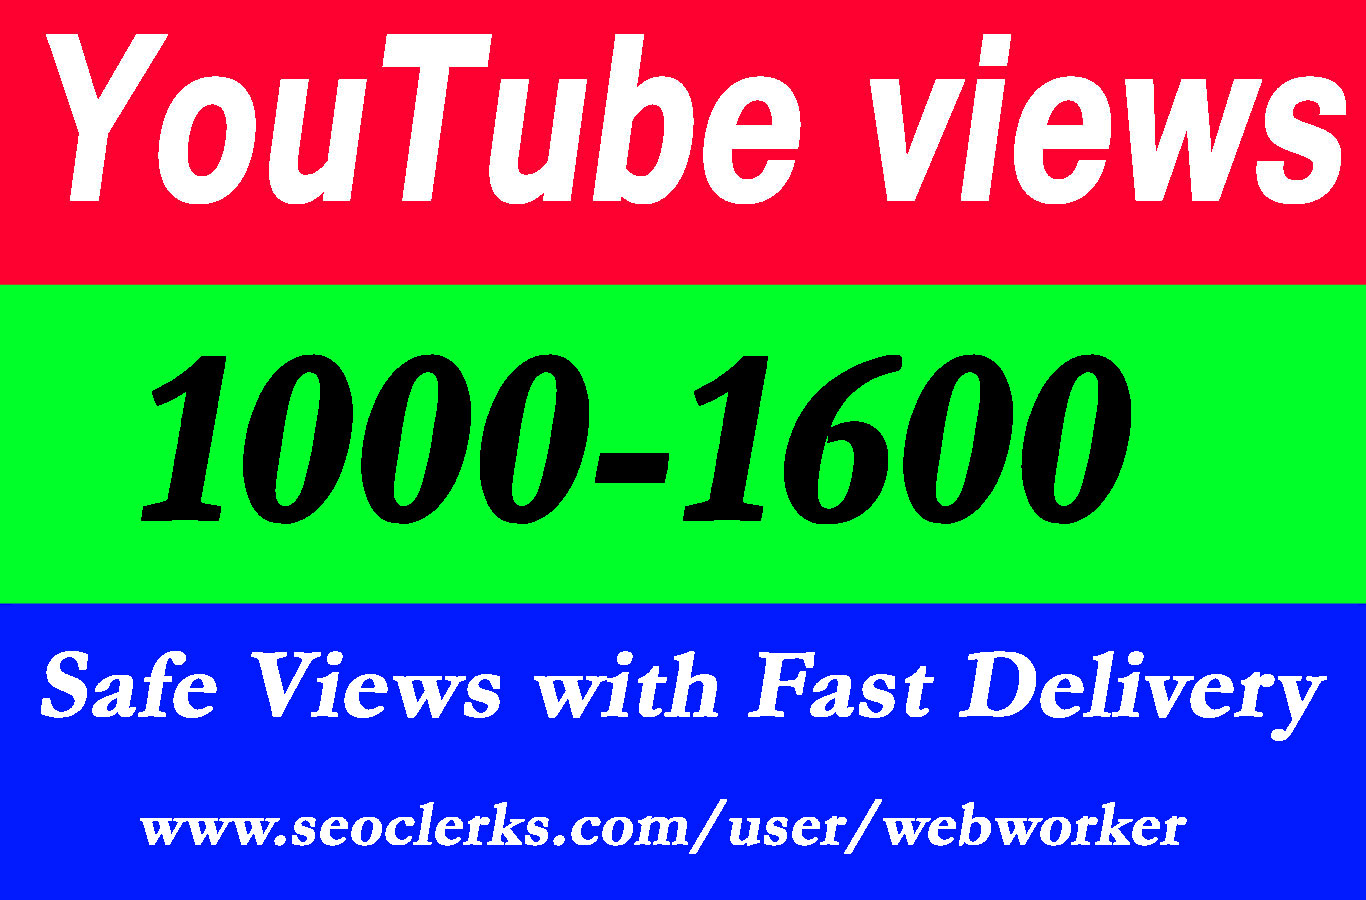 1000-1600 video Views with extra service 1000 1k 2k 3k 4k 5k 6k 7k 8k 9k 10K 15K 20K 25K 40K 50K 100K Or 3000 4000 5000 6000 7000 8000 9000 10000 20000 30000 40000 200K 500K